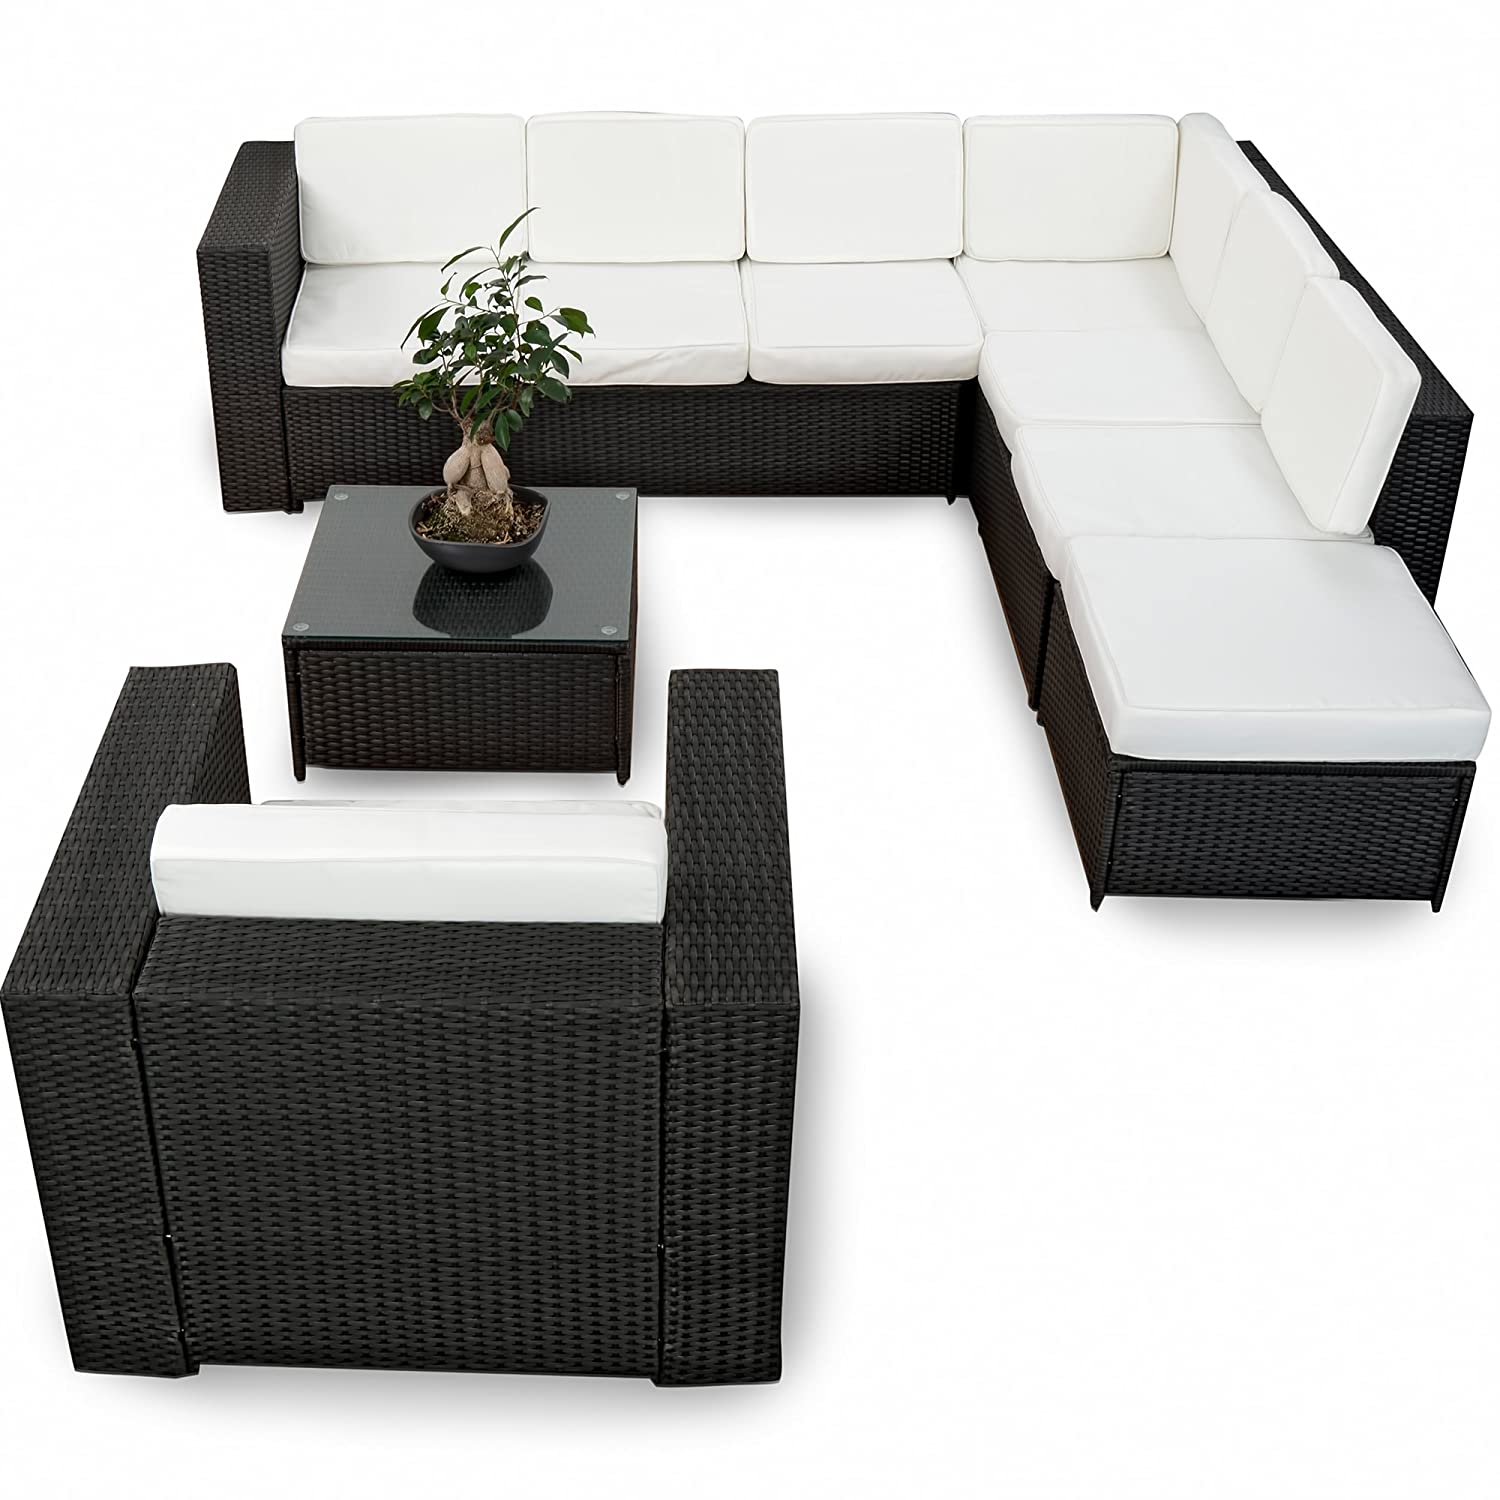 xinro 23tlg gartenm bel lounge set g nstig 1x 1er lounge sessel loungem bel polyrattan. Black Bedroom Furniture Sets. Home Design Ideas